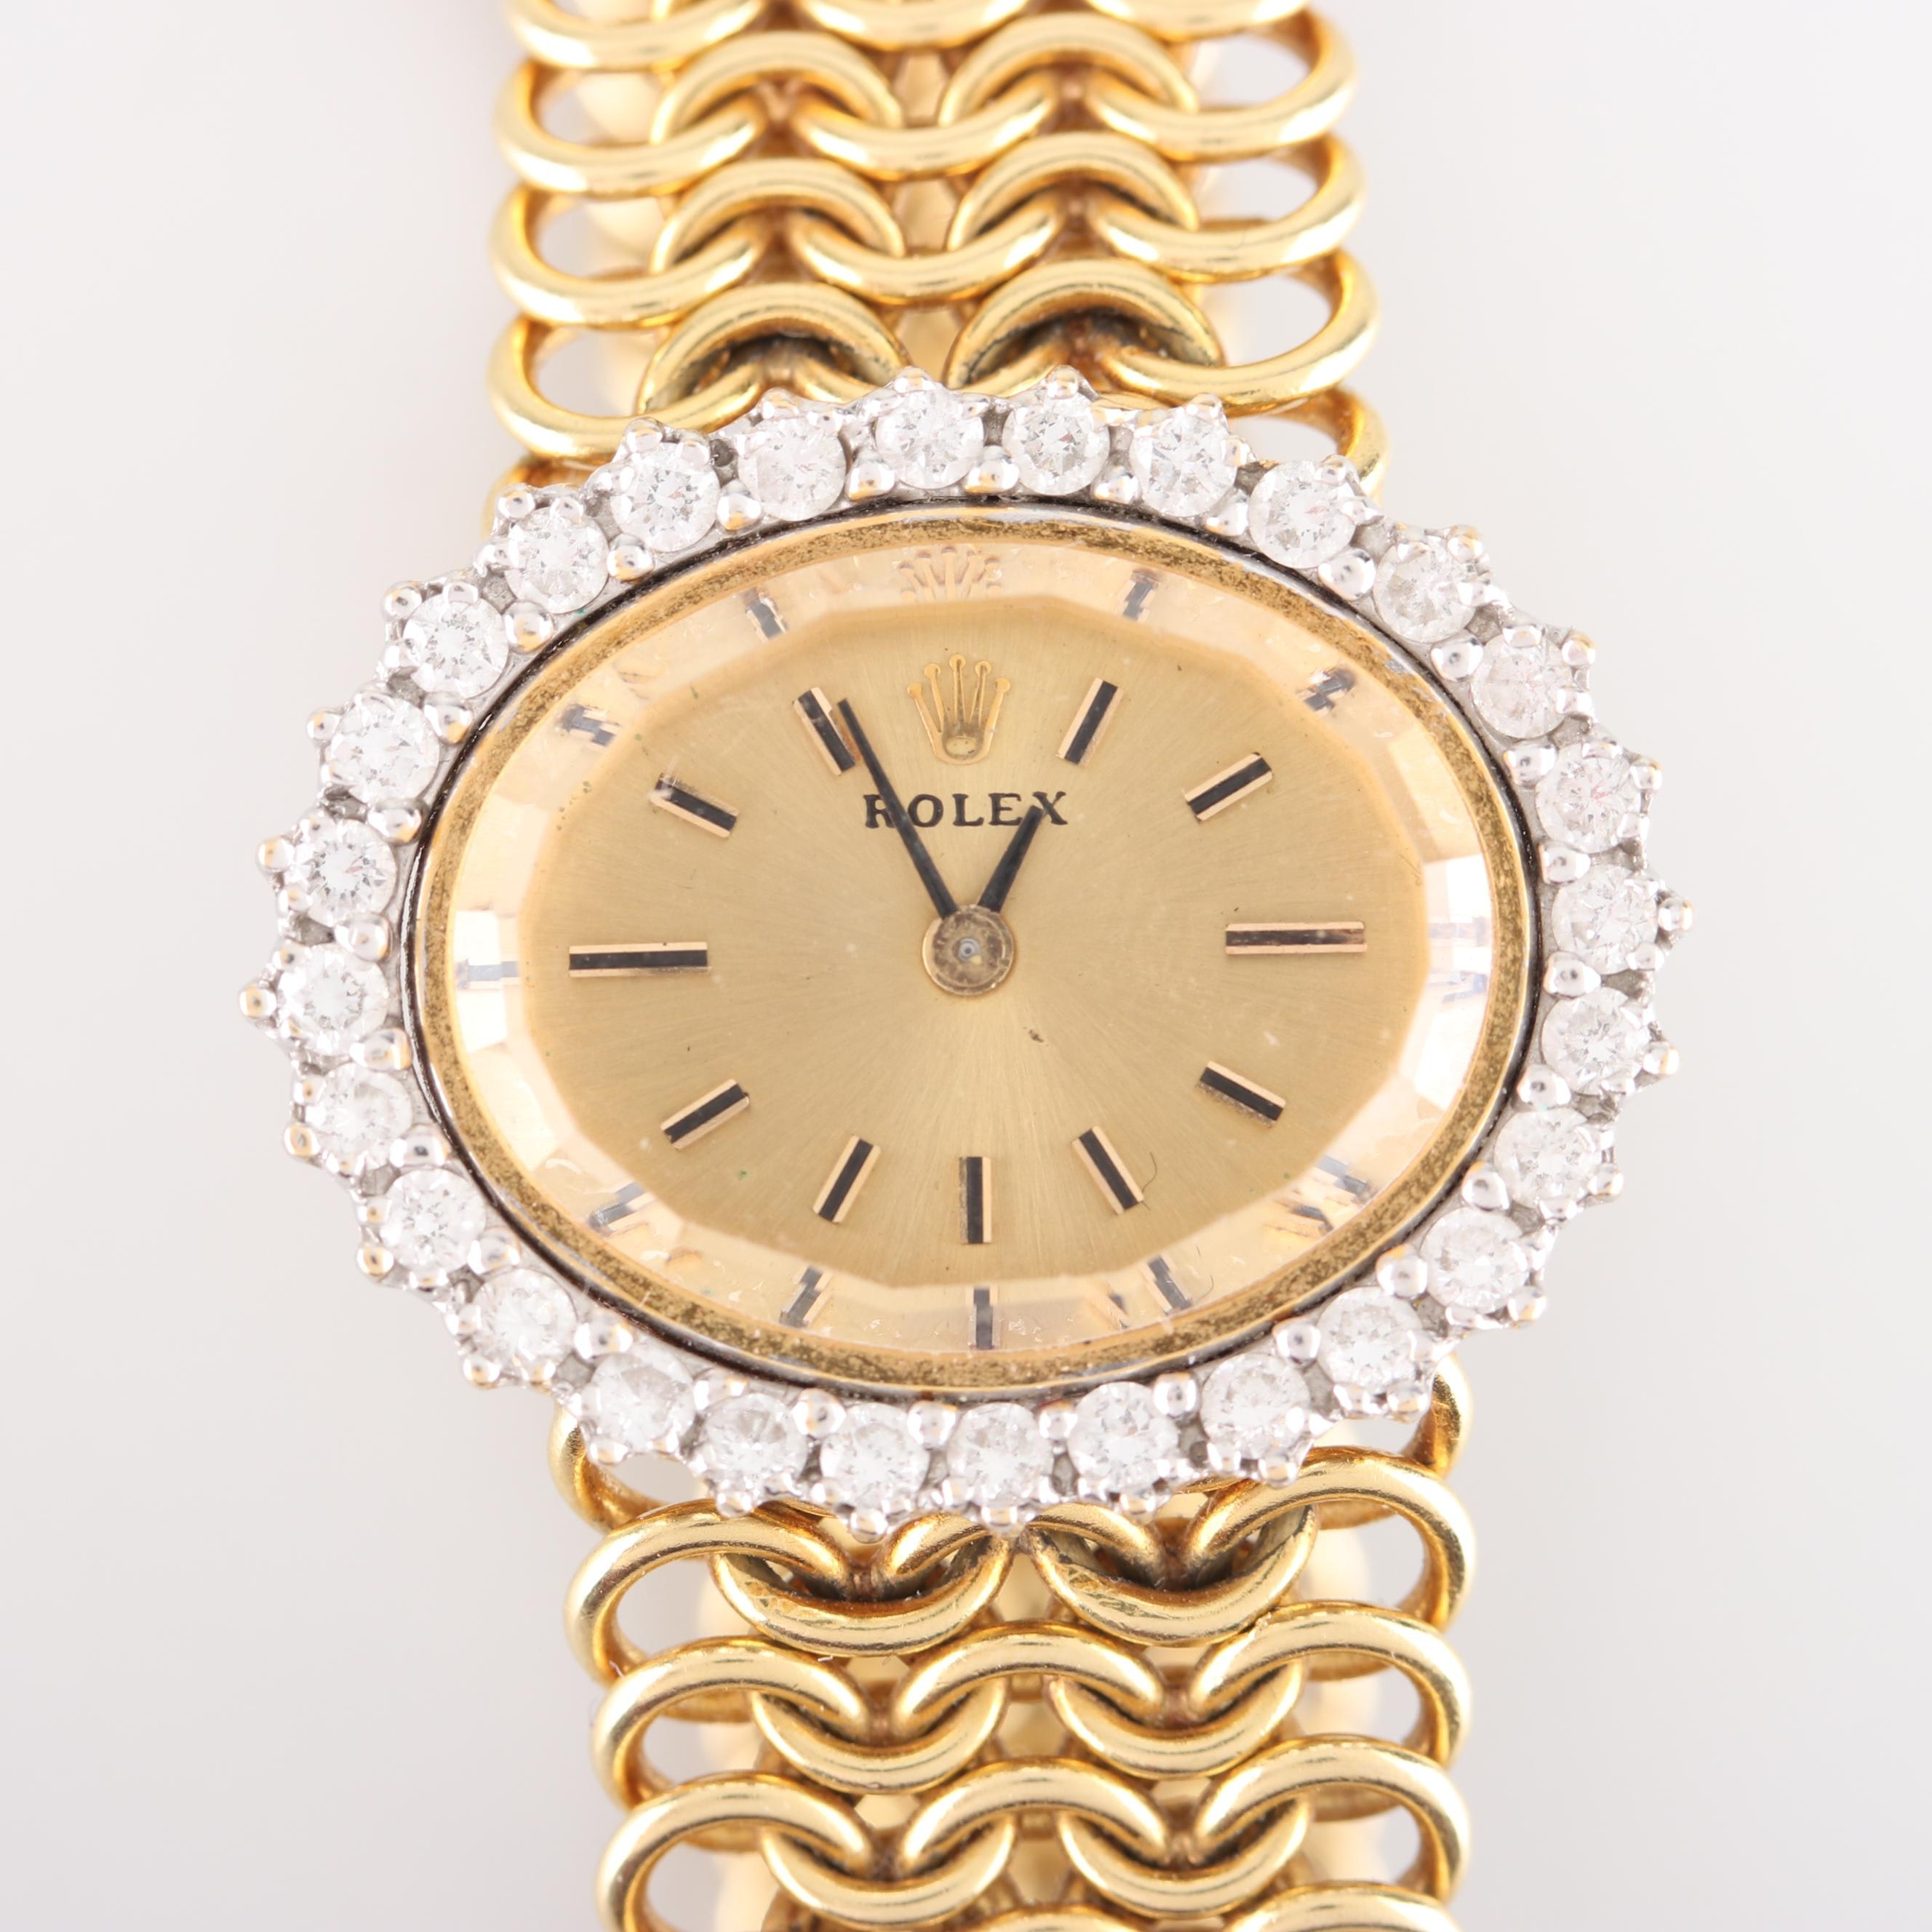 Rolex 18K Yellow Gold and Diamond Wristwatch